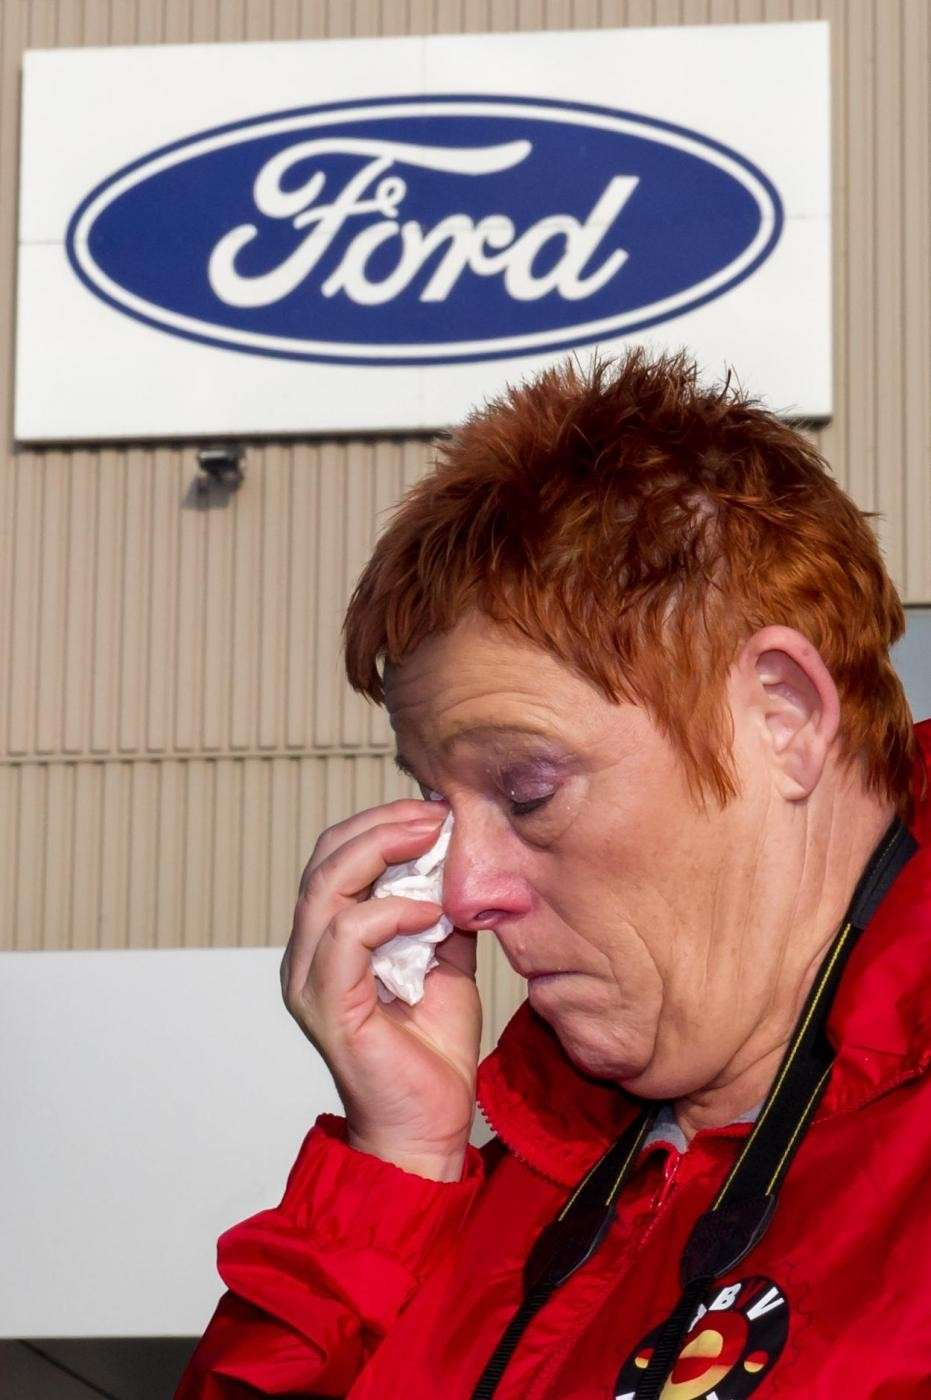 Ford chiude stabilimento in Belgio a Genk (5)